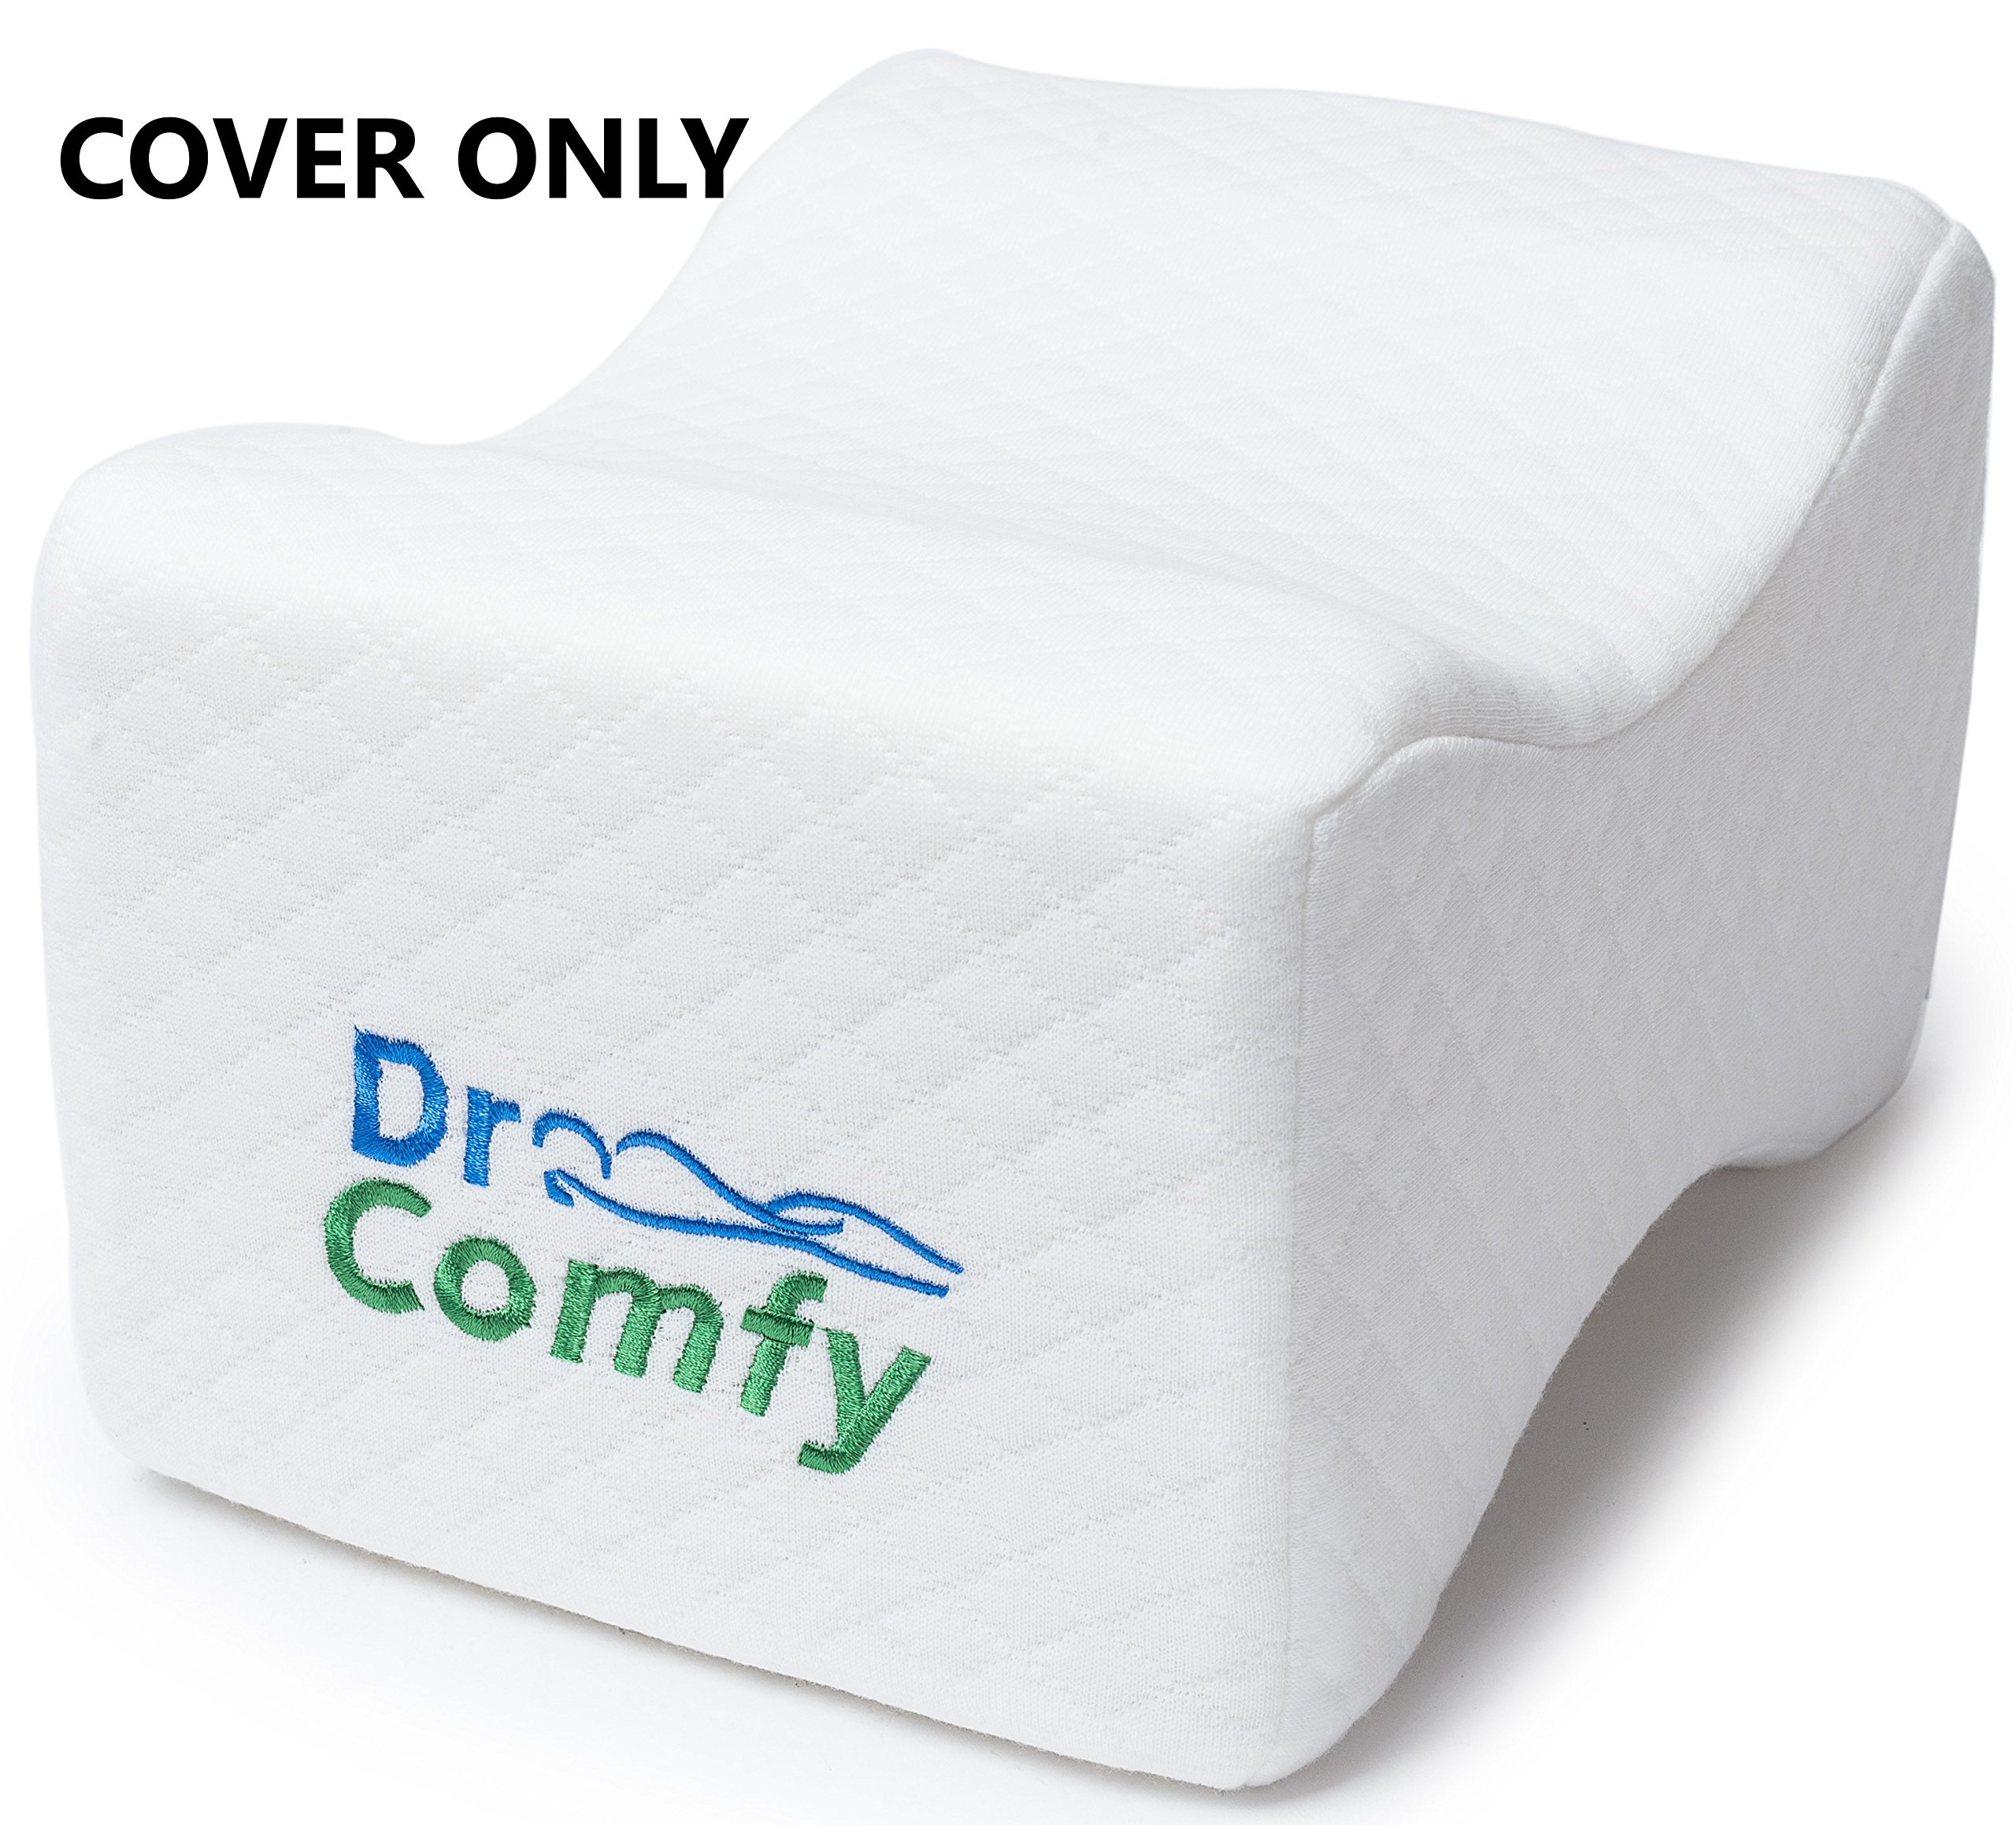 Dr. Comfy Knee Pillow Cover set- Pack Of 2 Replacement Pillow cases- Fits Knee Pillow. (REPLACEMENT COVER ONLY)